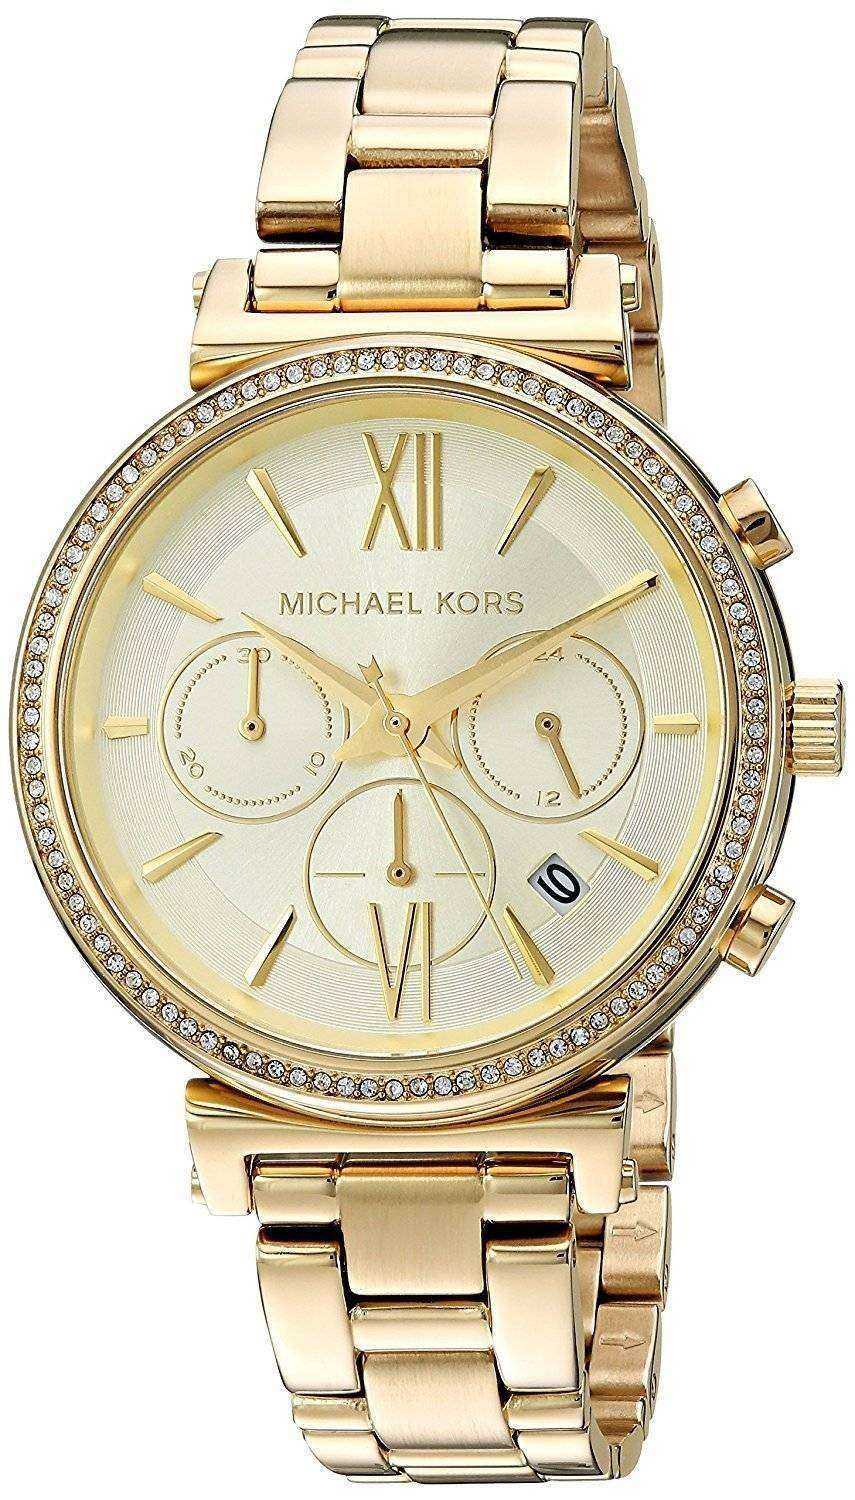 Michael Kors Chronograph Quartz Diamond Accent MK6559 Women's Watch